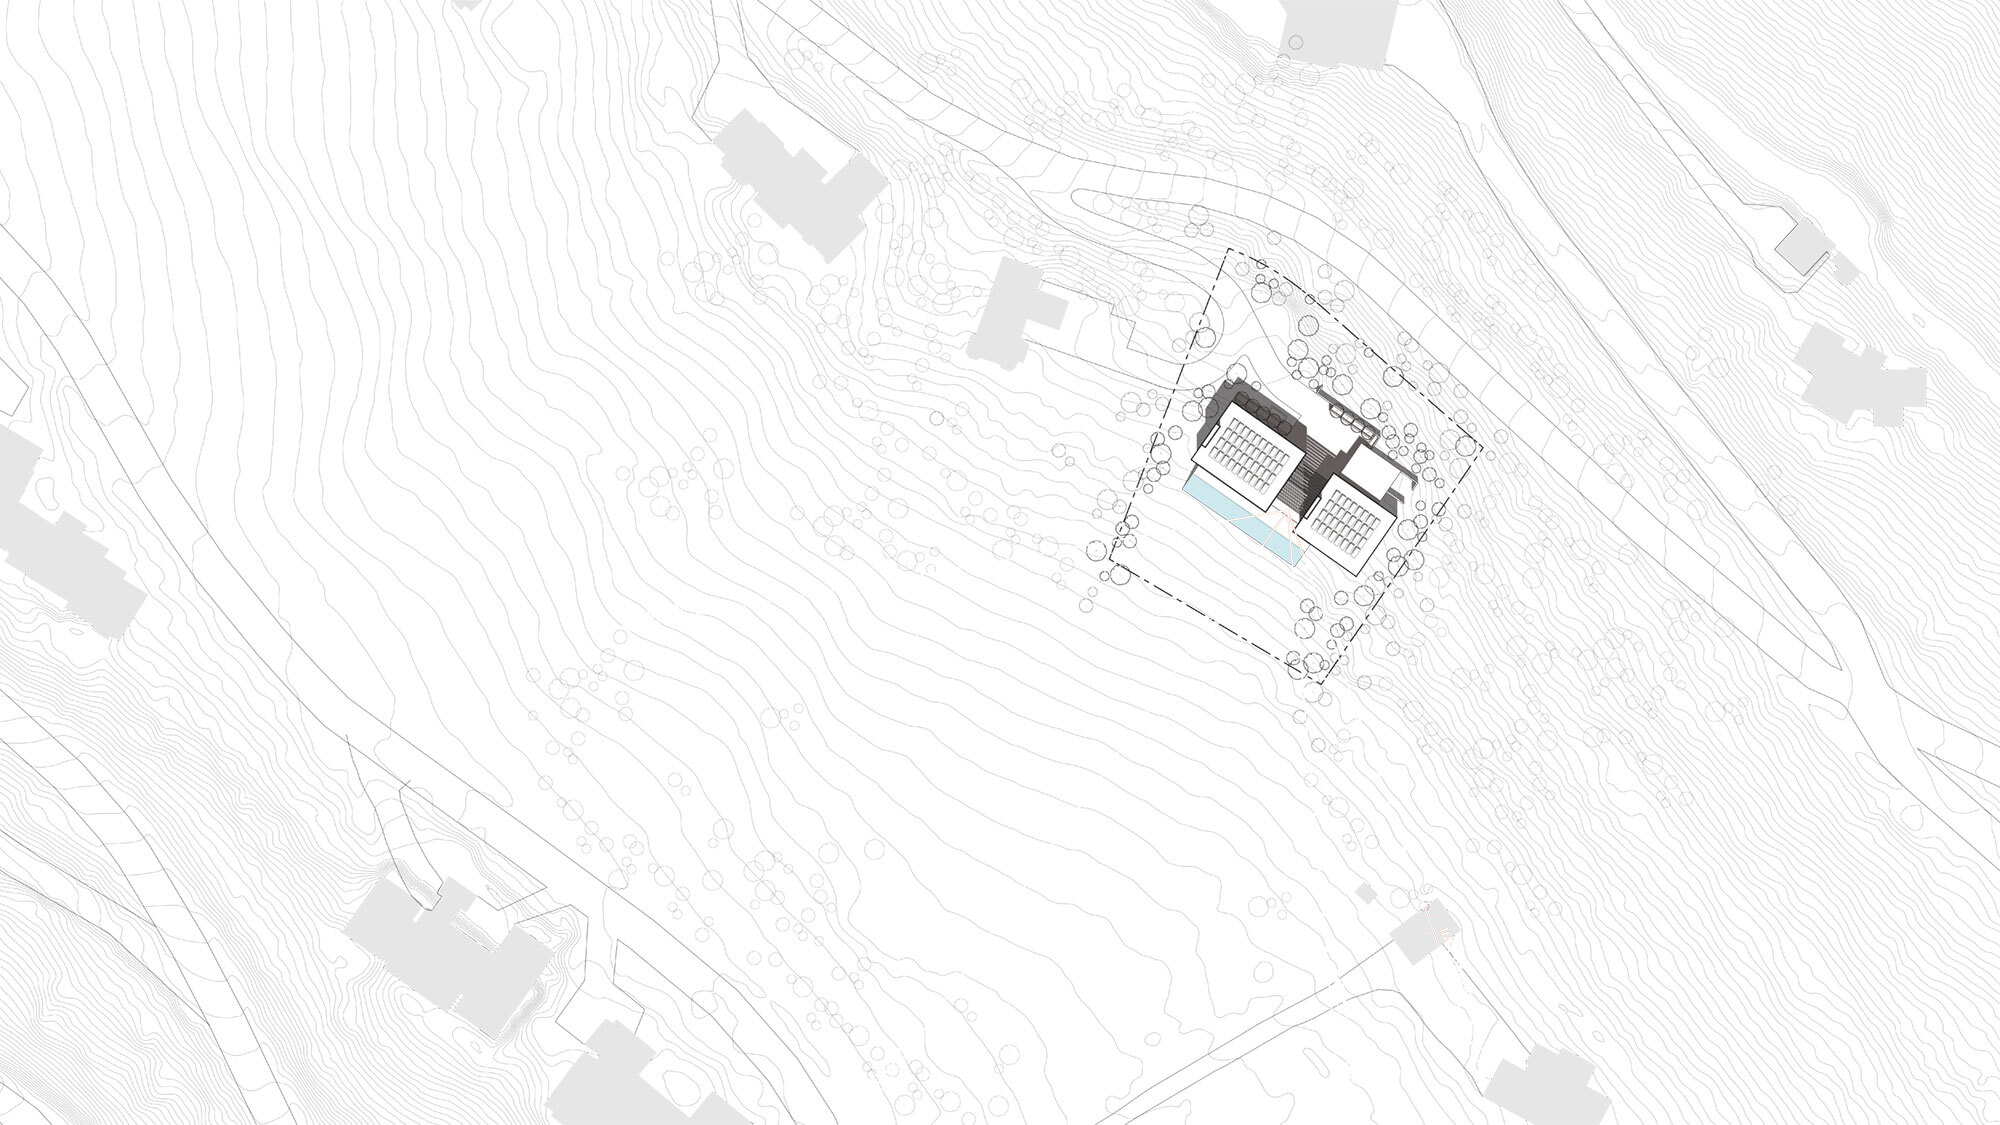 CCY Architects Pavilion site plan with PV